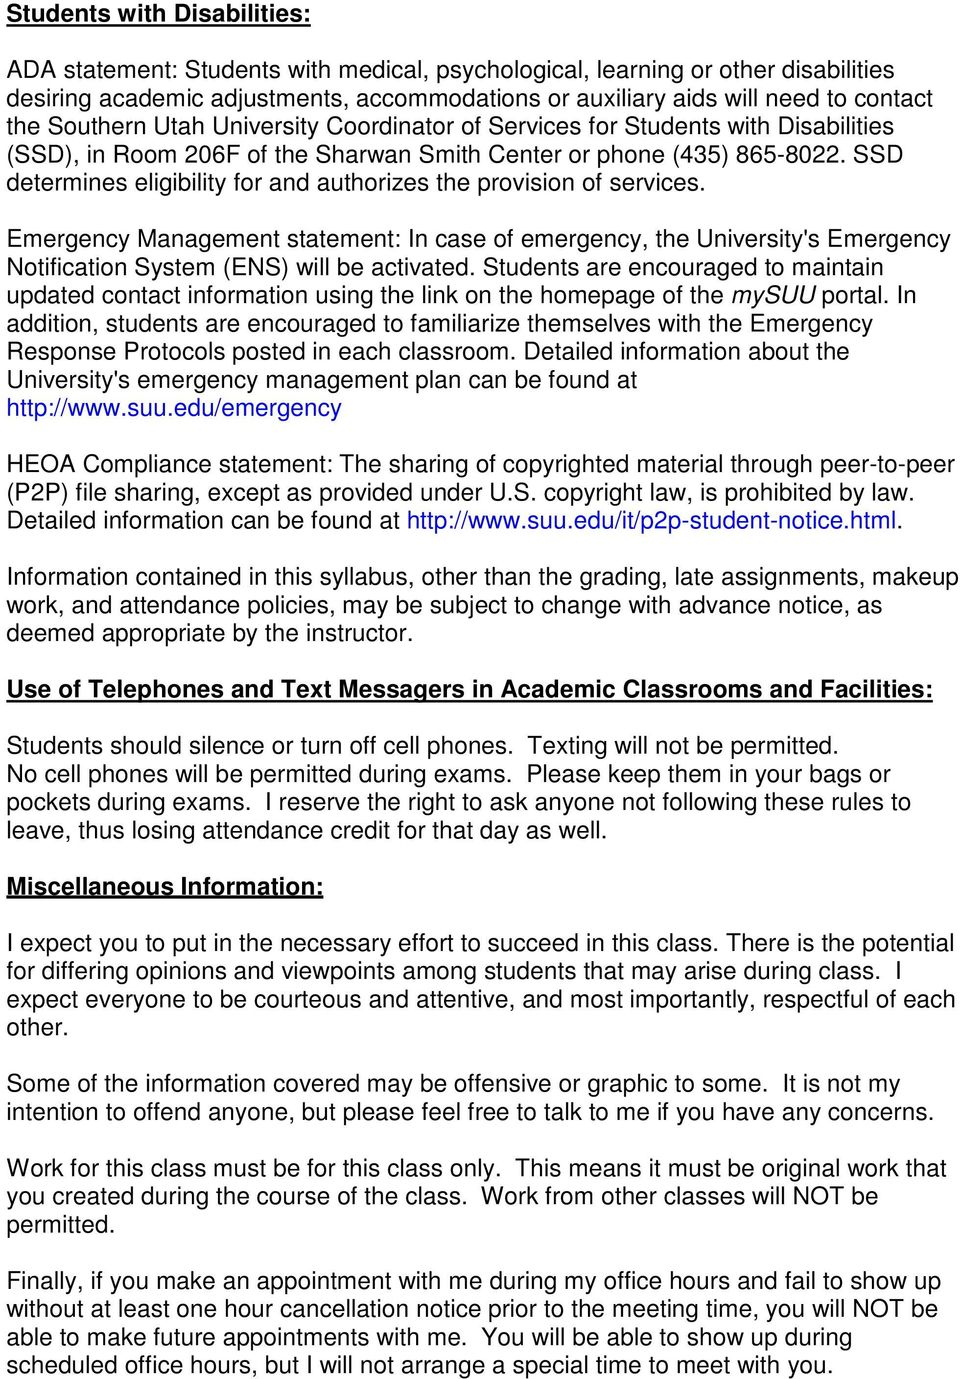 SSD determines eligibility for and authorizes the provision of services. Emergency Management statement: In case of emergency, the University's Emergency Notification System (ENS) will be activated.